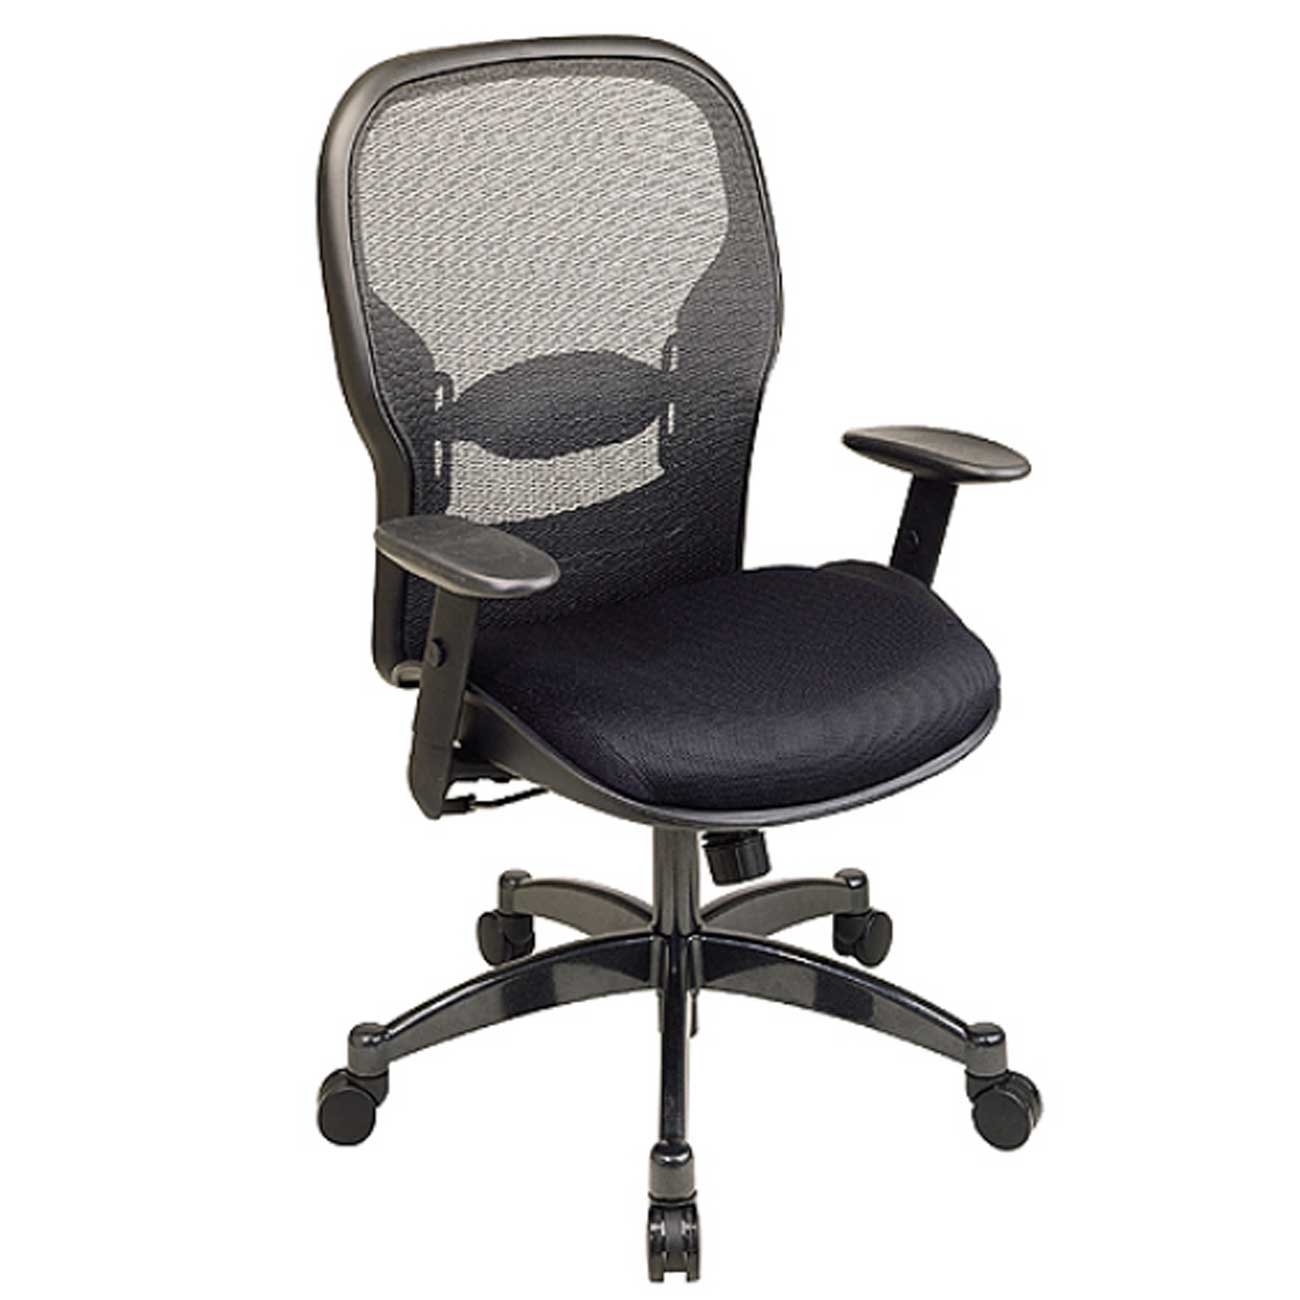 modern adjustable cheap desk chair in black